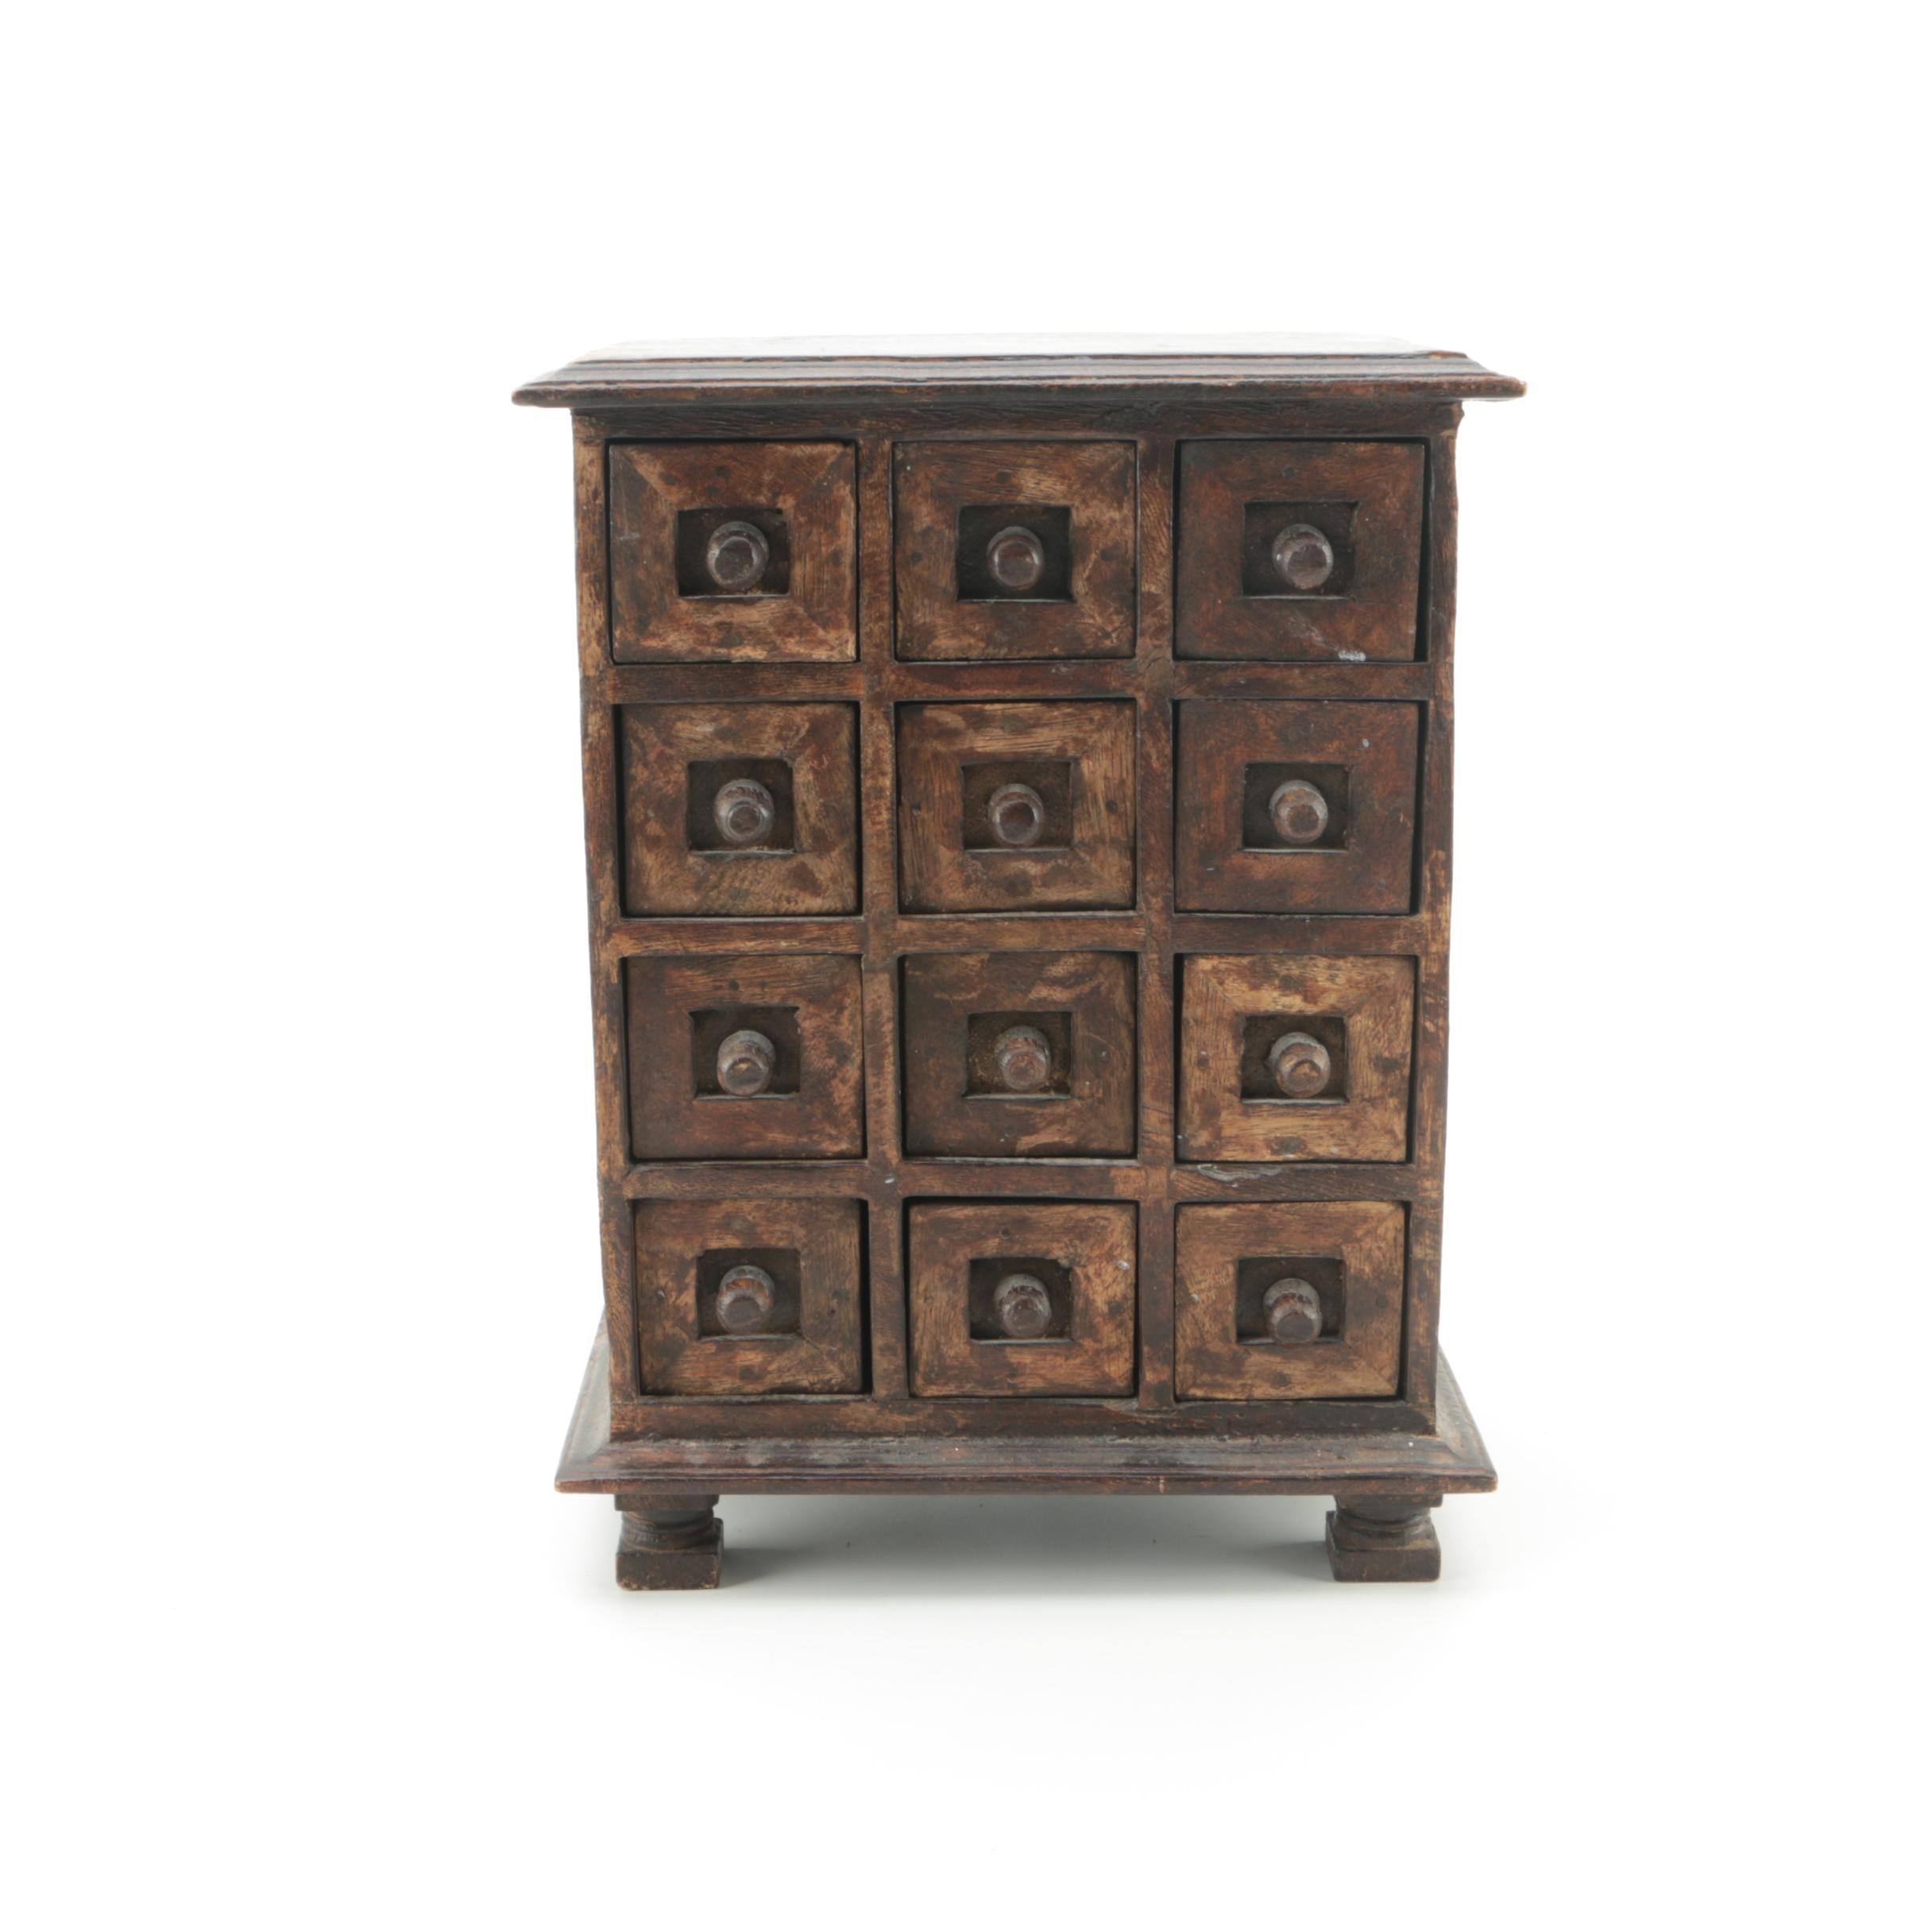 Wood Apothecary Spice Chest